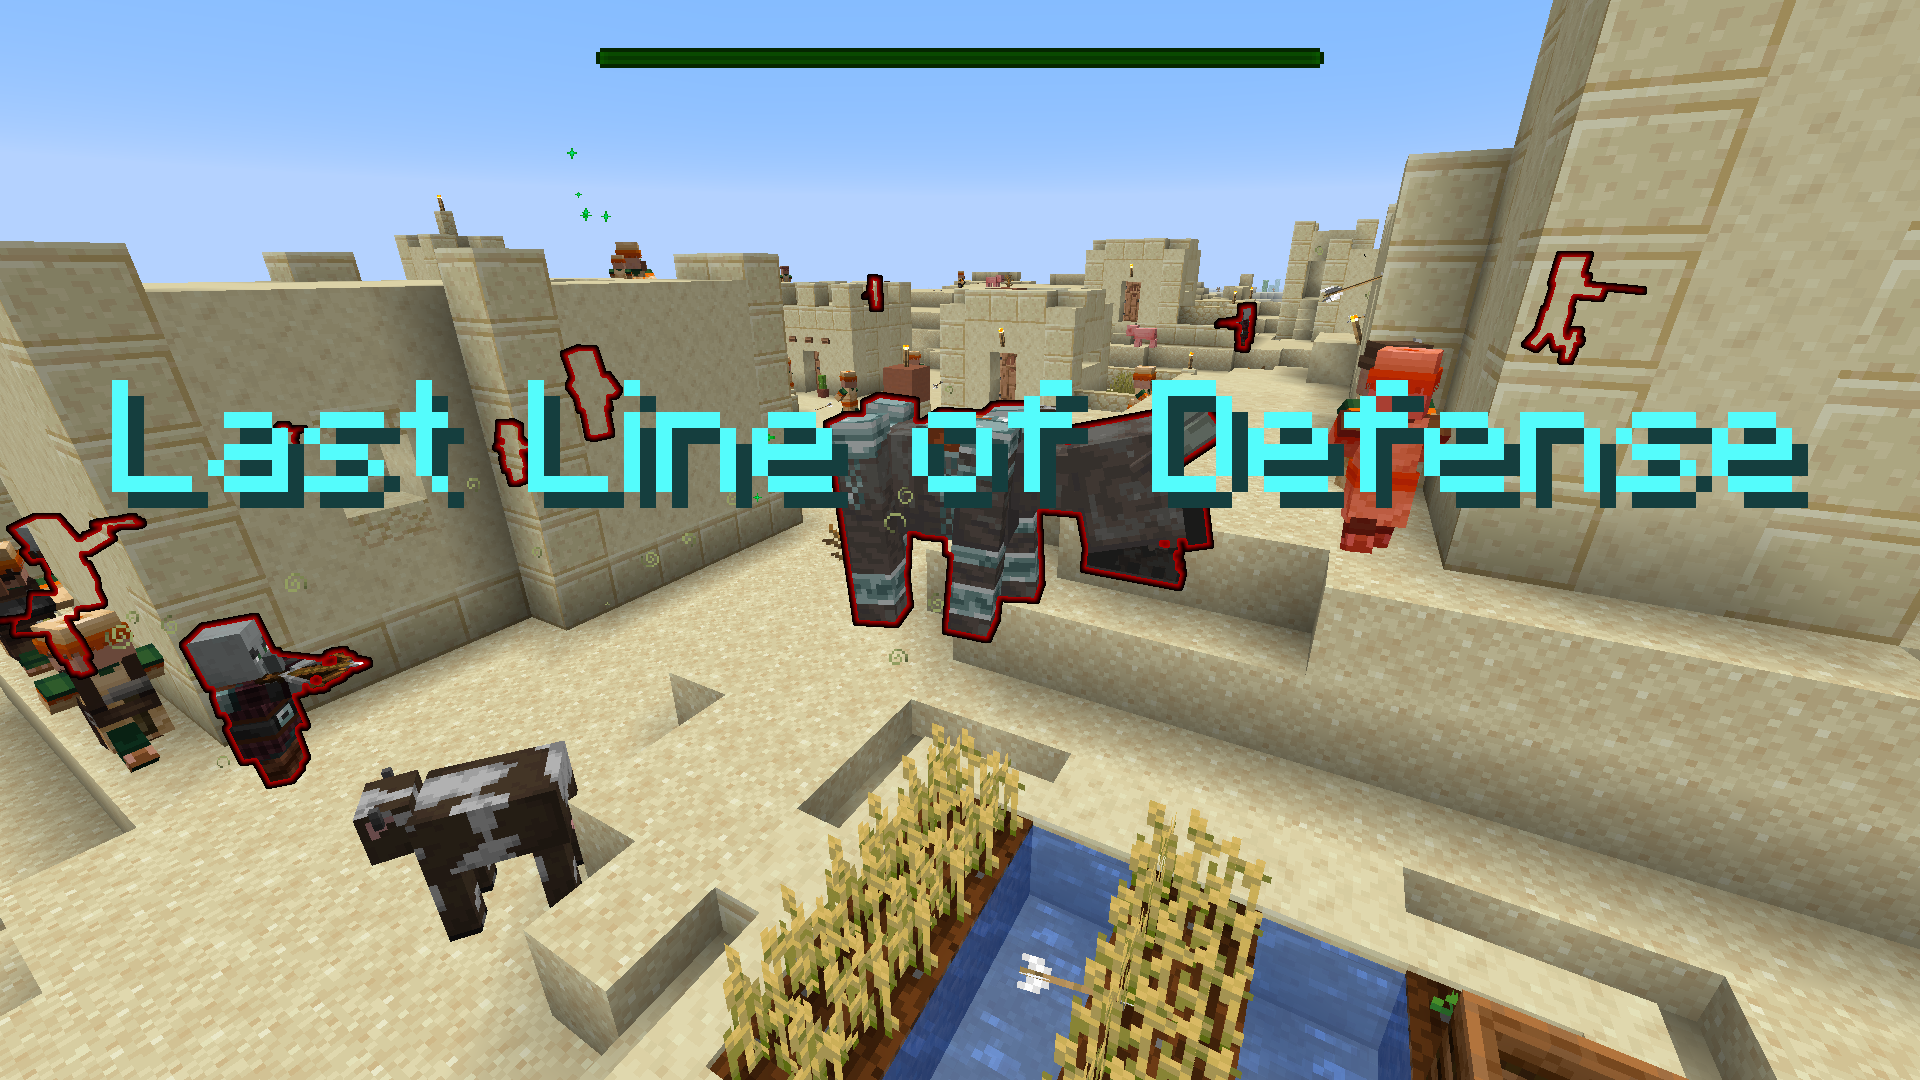 Télécharger Last Line of Defense pour Minecraft 1.16.5